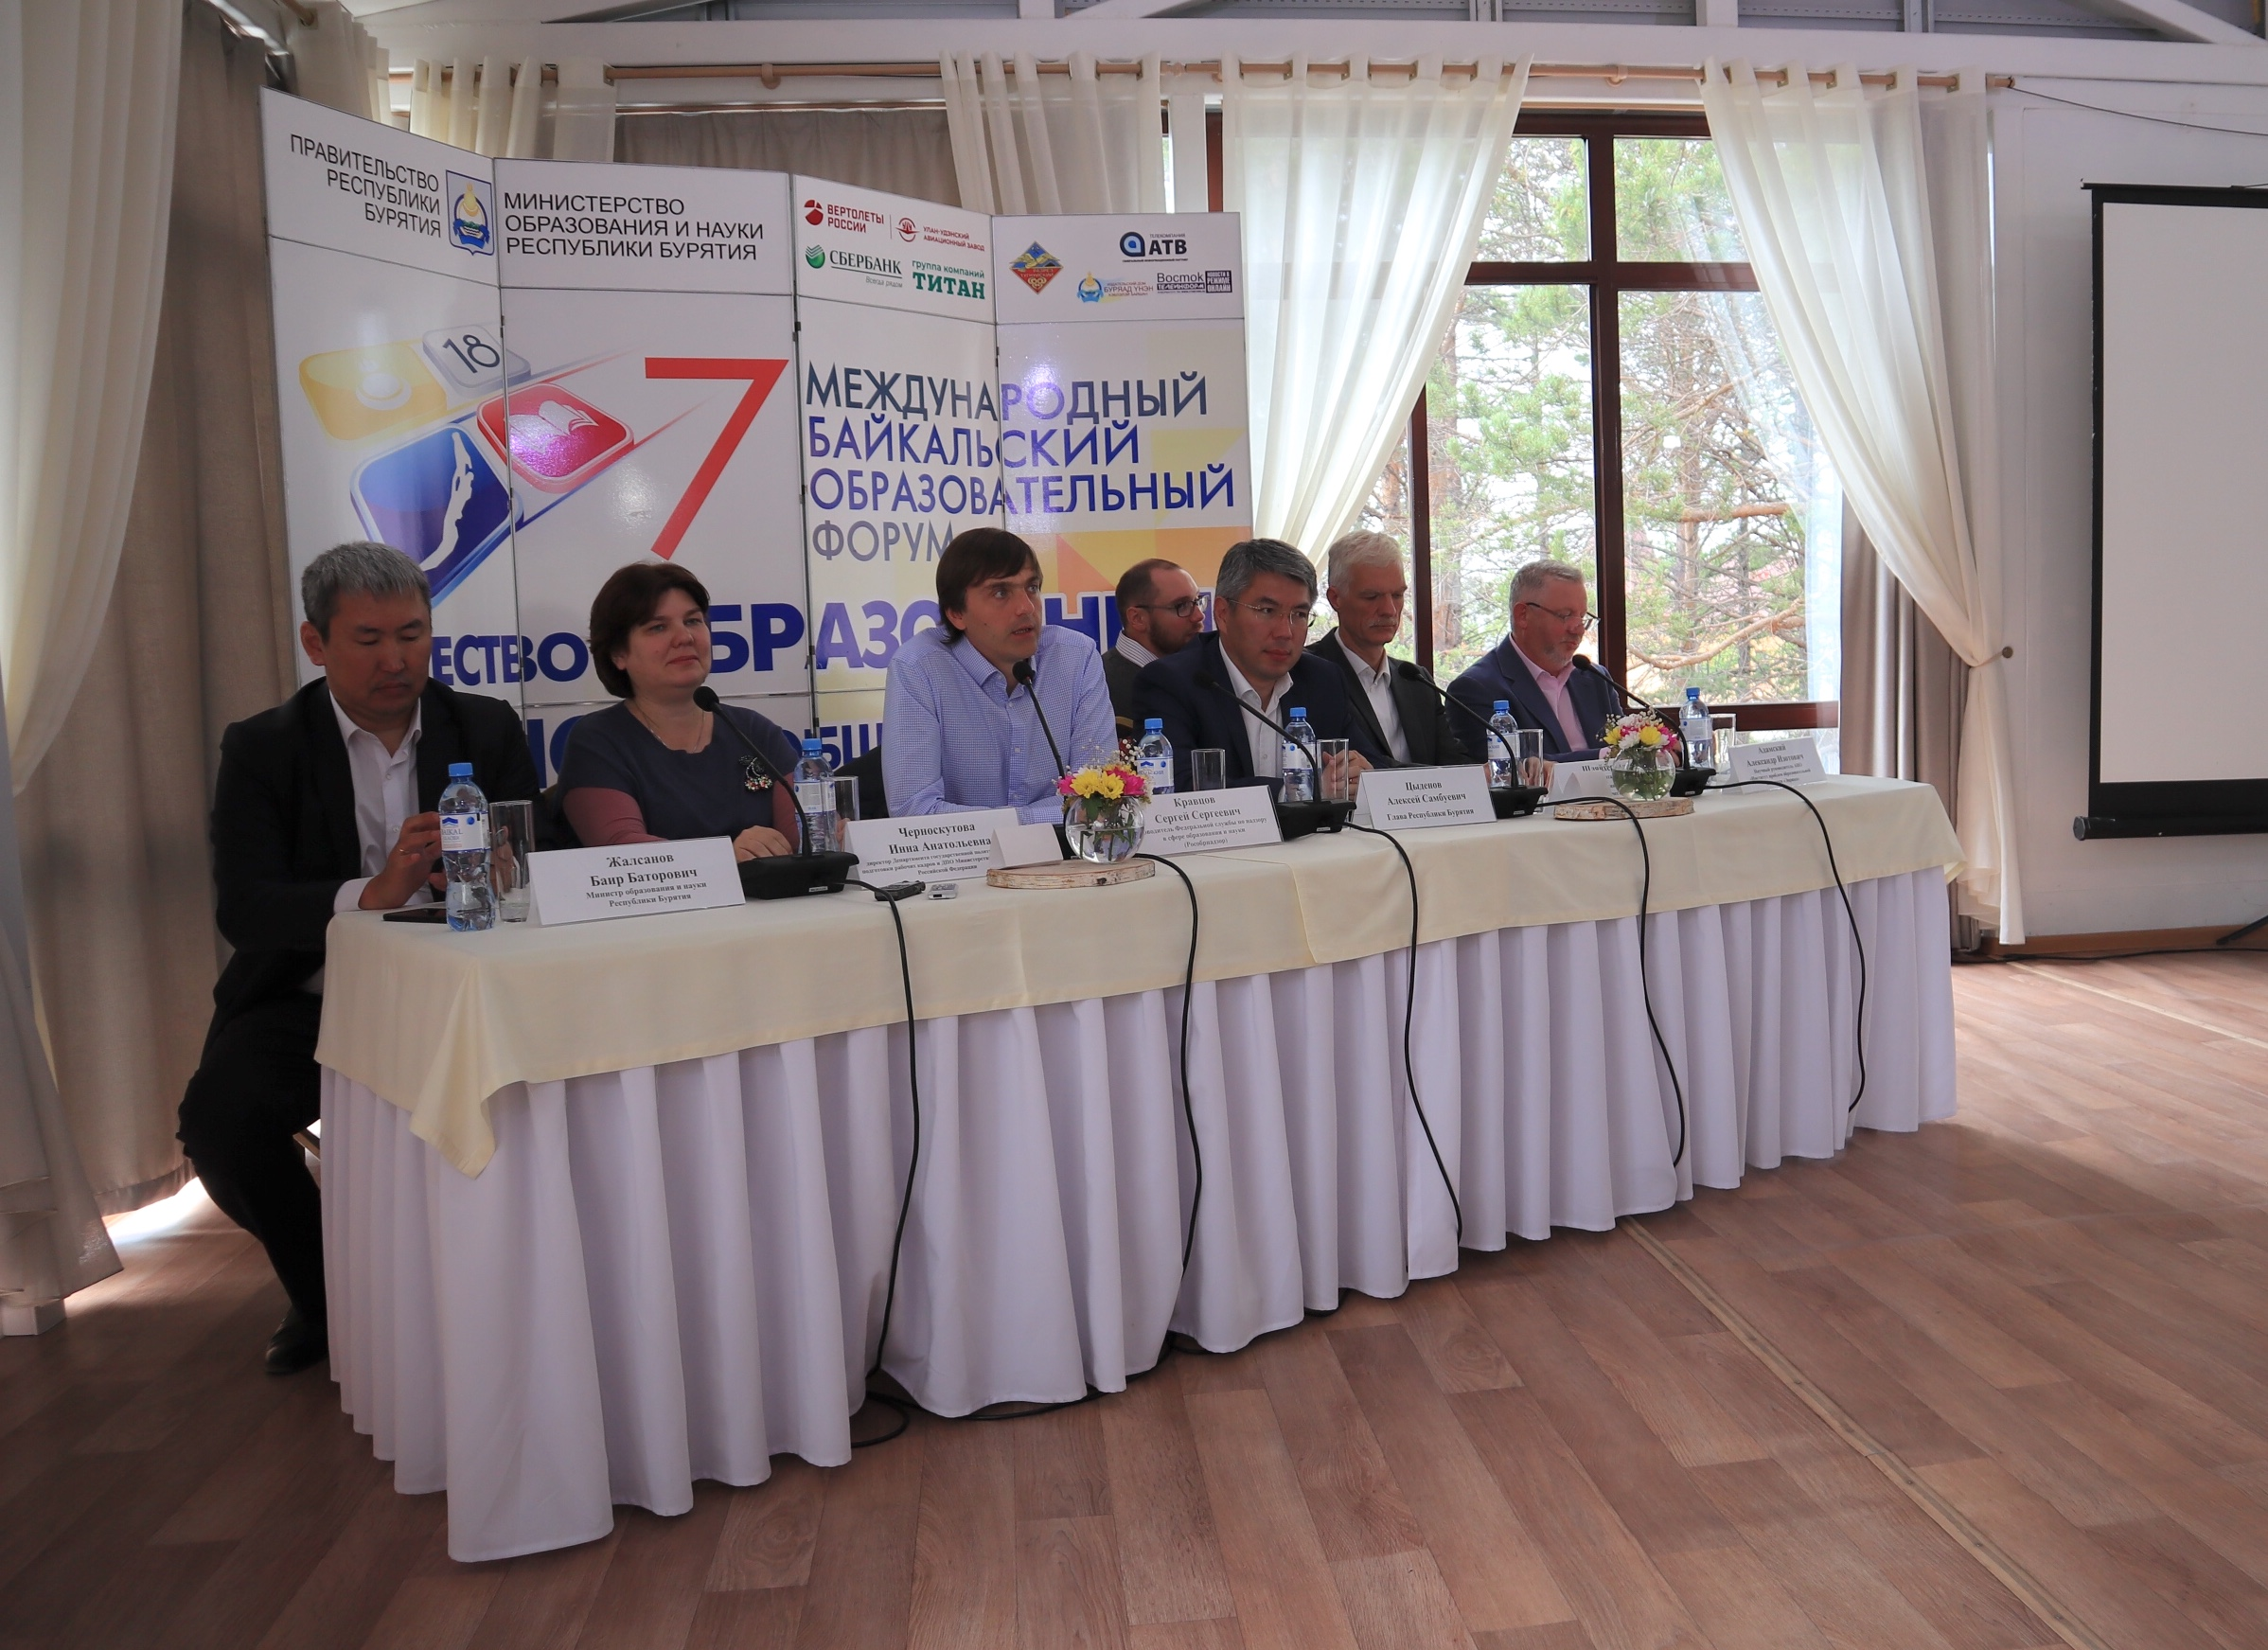 Rosobrnadzor announced the establishment of the International Council for the Assessment of the Quality of Education